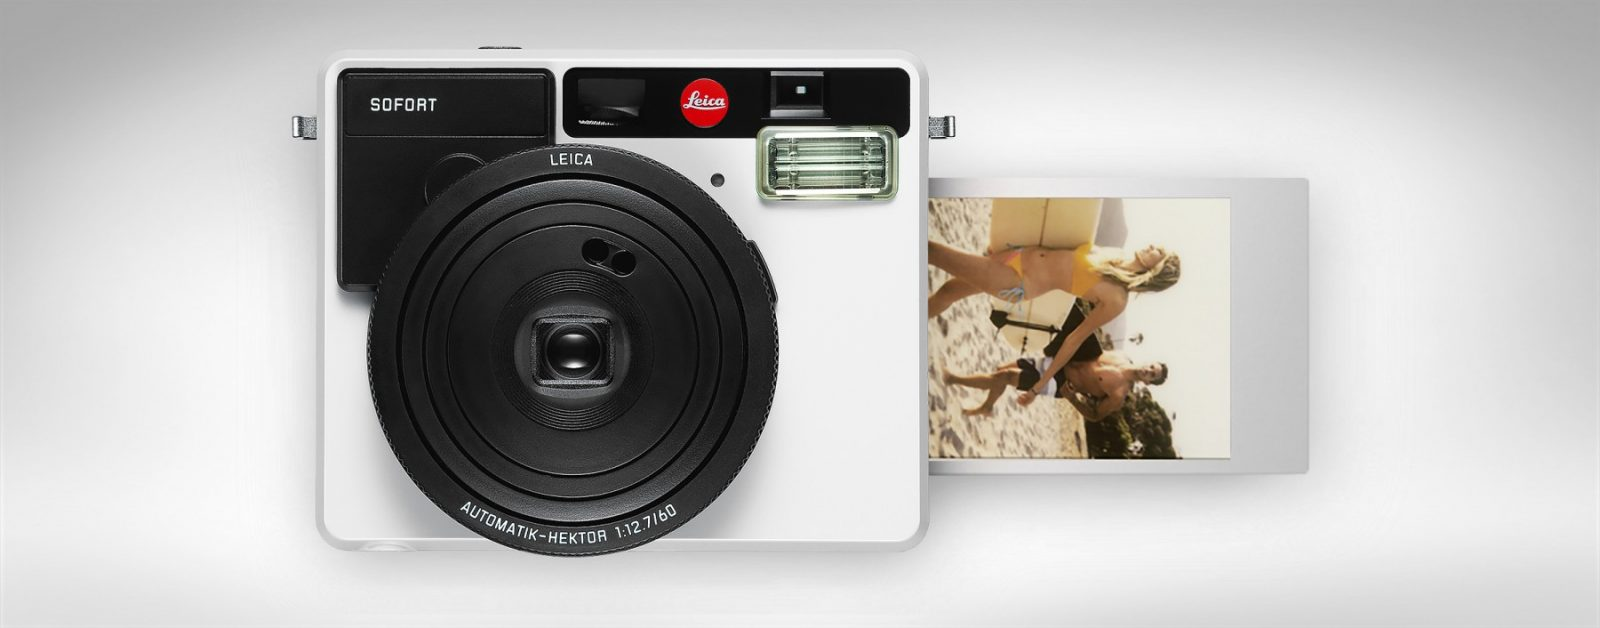 Leica releases a luxury instant camera, Leica Sofort